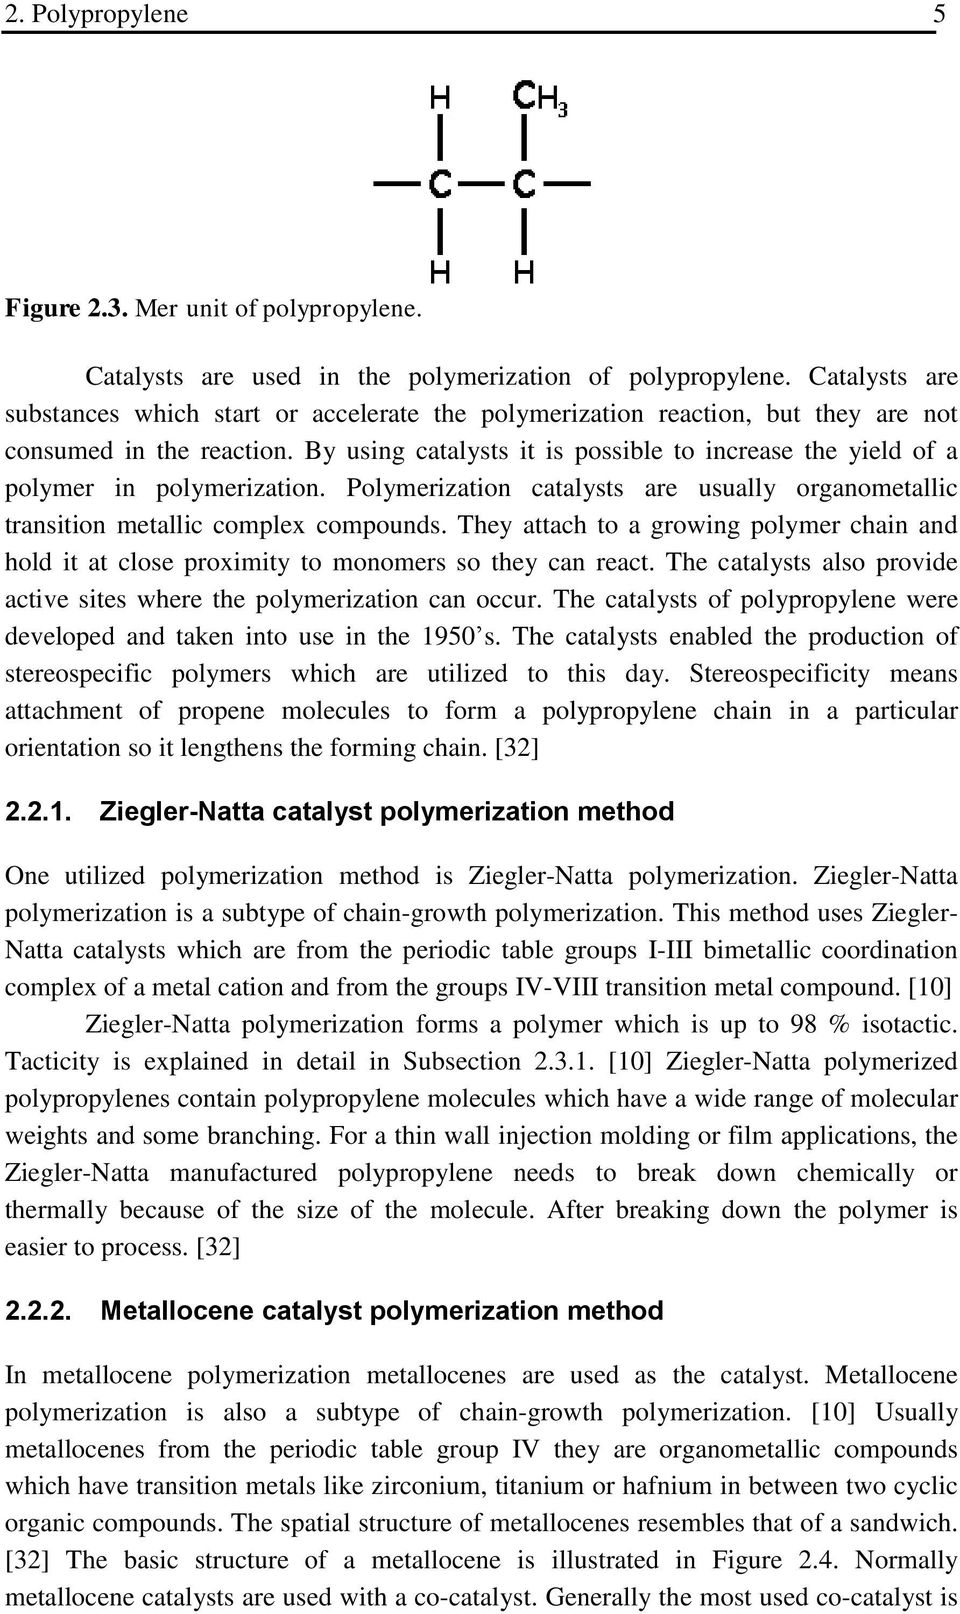 By using catalysts it is possible to increase the yield of a polymer in polymerization. Polymerization catalysts are usually organometallic transition metallic complex compounds.